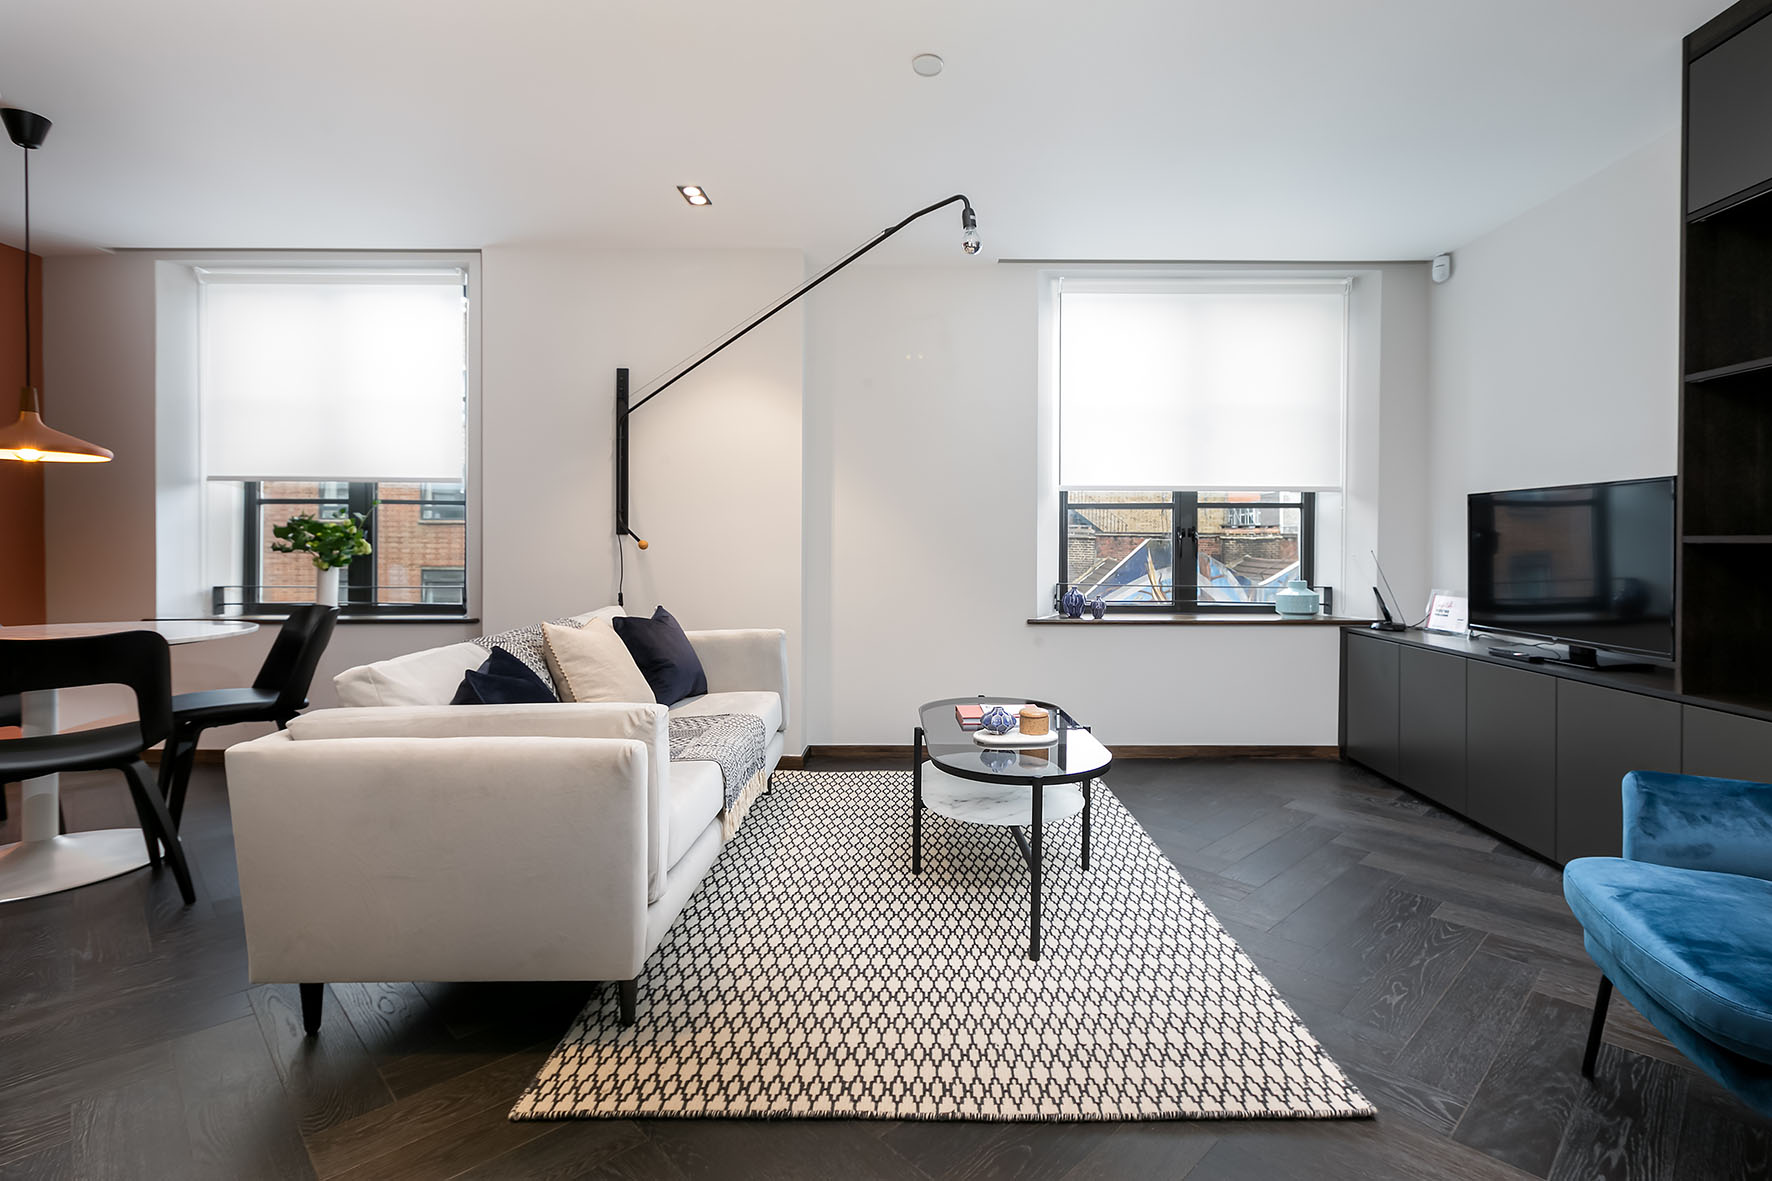 Lovelydays luxury service apartment rental - London - Soho - Noel Street VII - Lovelysuite - 1 bedrooms - 1 bathrooms - Luxury living room - 68b042a49ba1 - Lovelydays